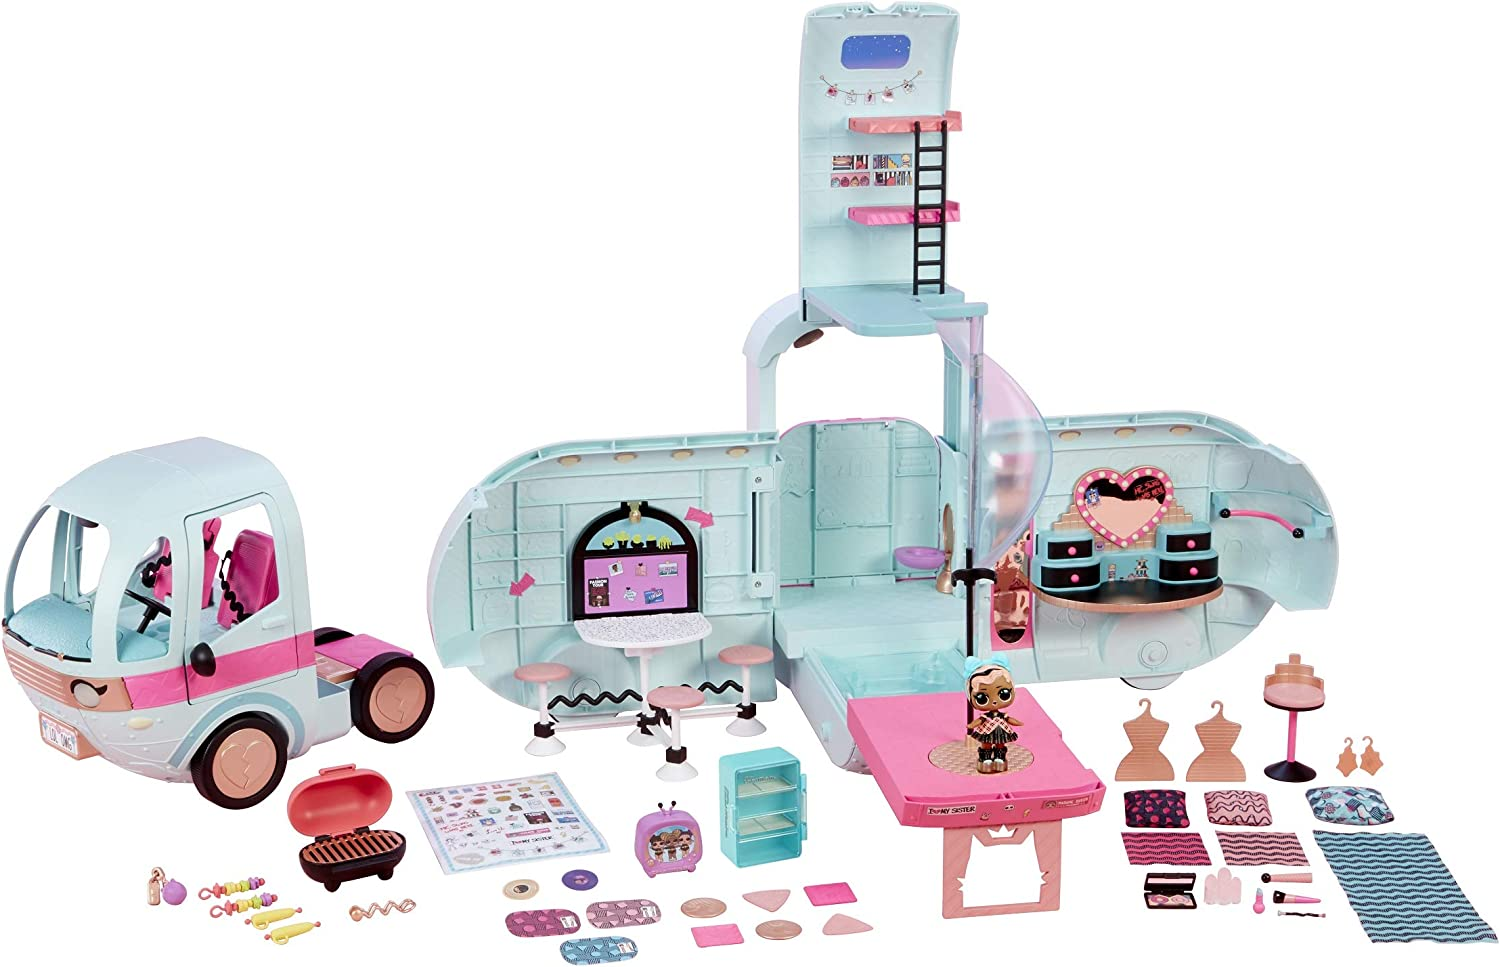 L.O.L 2-in-1 Glamper Fashion Camper with 55 Surprise Surprises